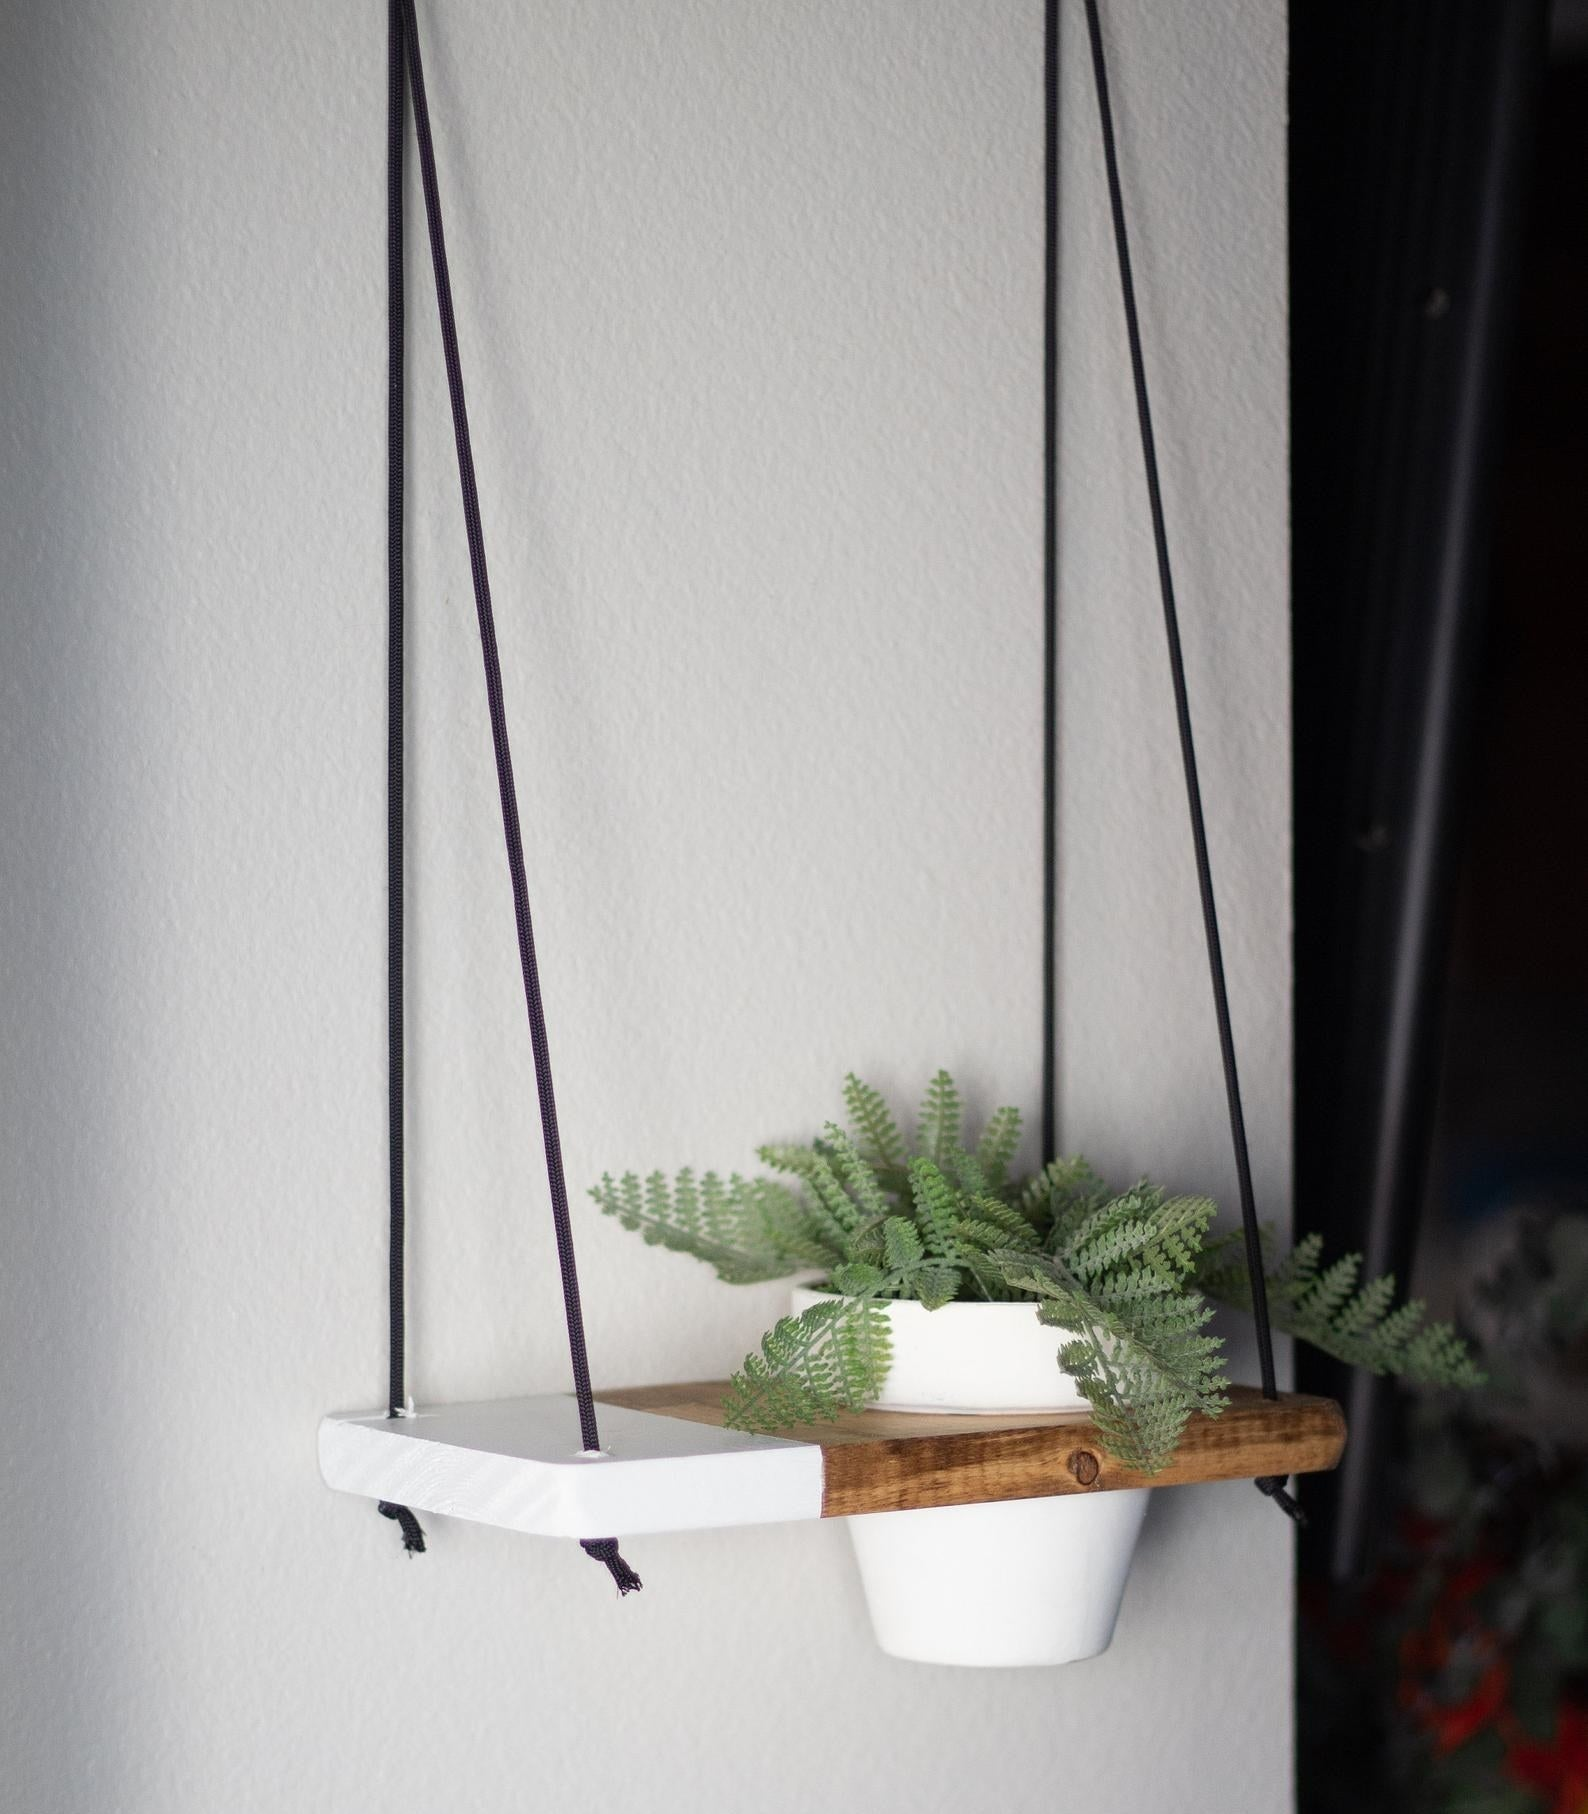 A piece of wood with a hole in the right side with a potted plant in it and a quarter of the left side painted white with black rope connecting it to the wall